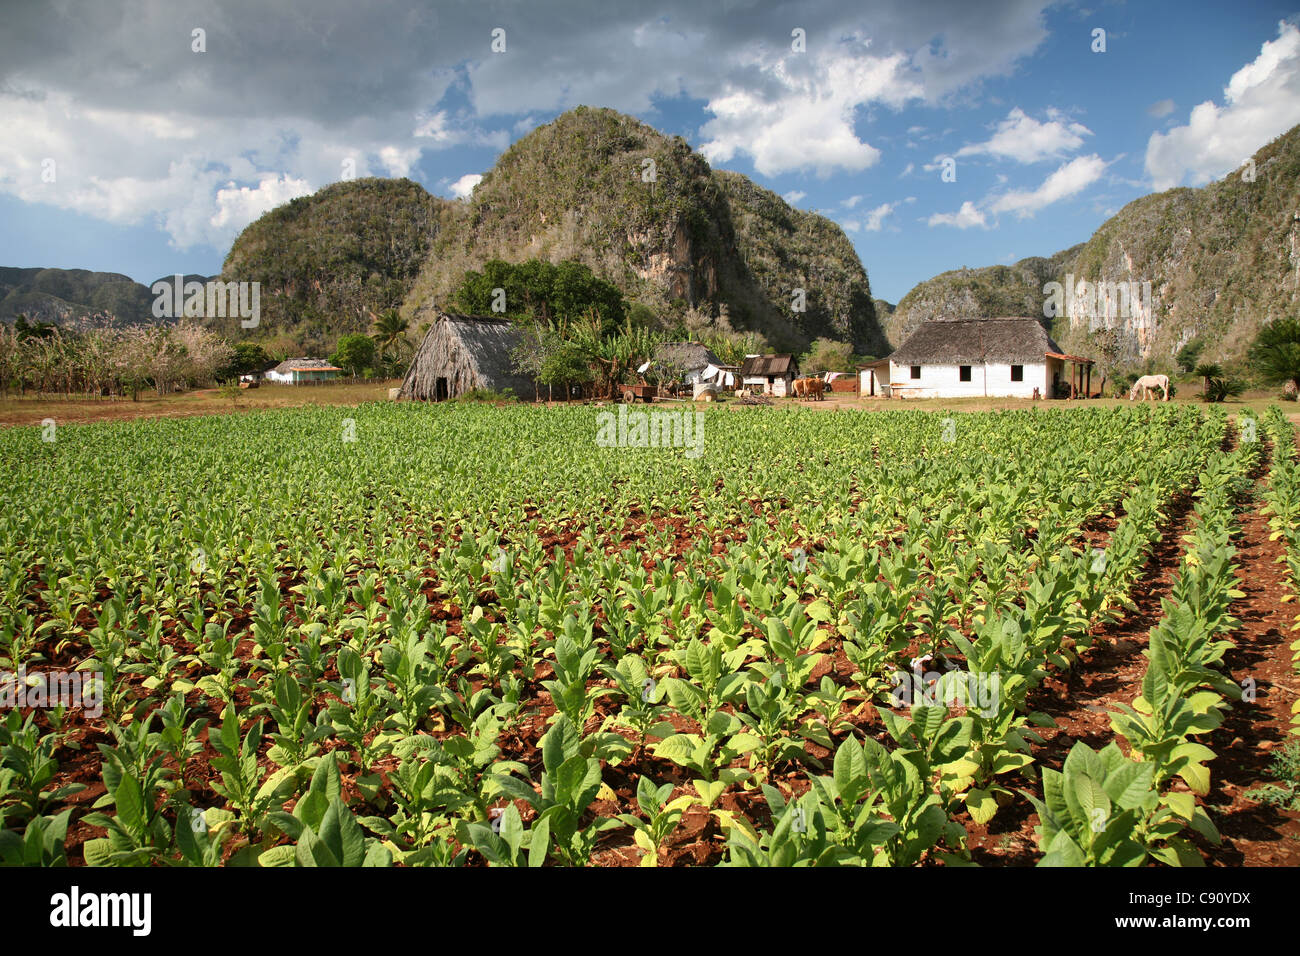 Tobacco plantation with a drying house and the mogotes hill in the background in the Vinales Valley, Cuba. - Stock Image